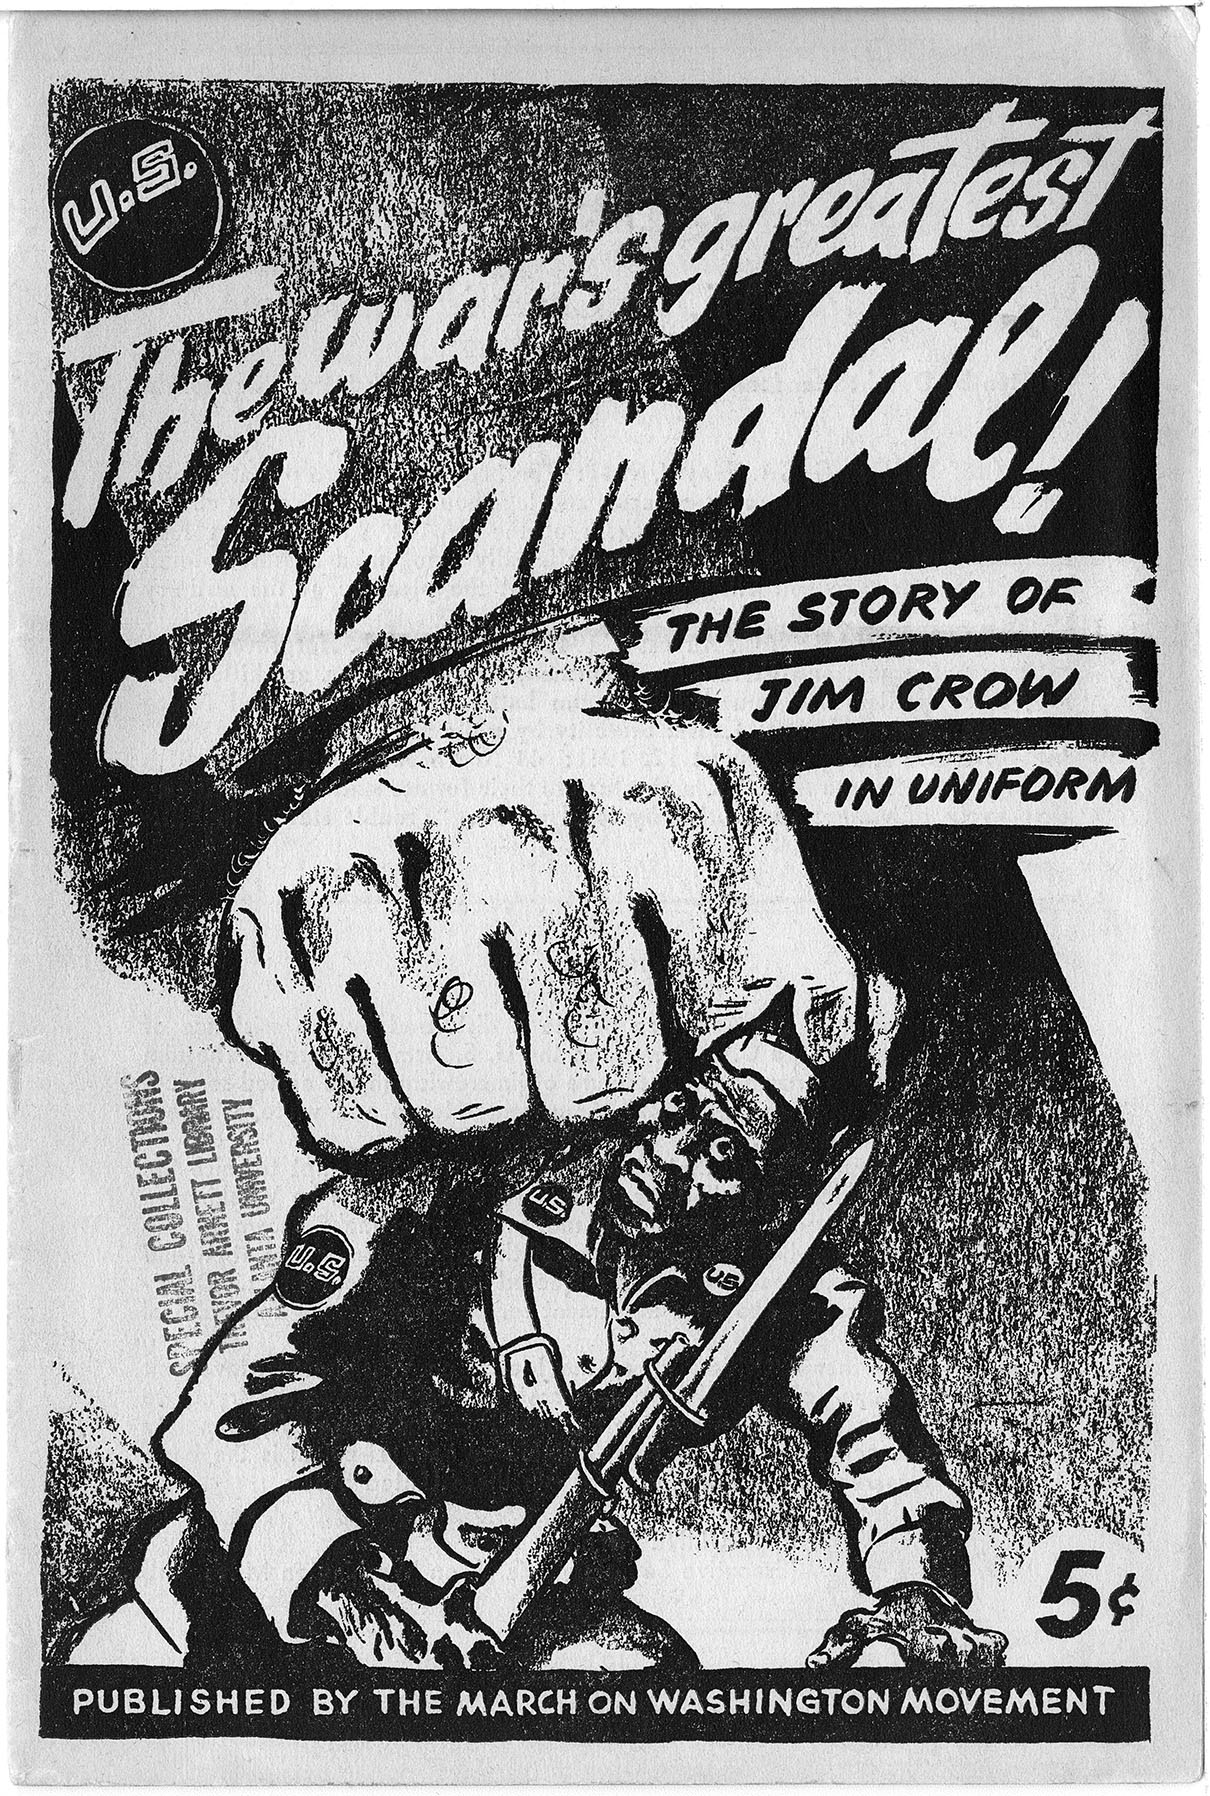 """The war's greatest scandal! The story of Jim Crow in uniform"", Dwight Macdonald, 1943, World War II vertical file"